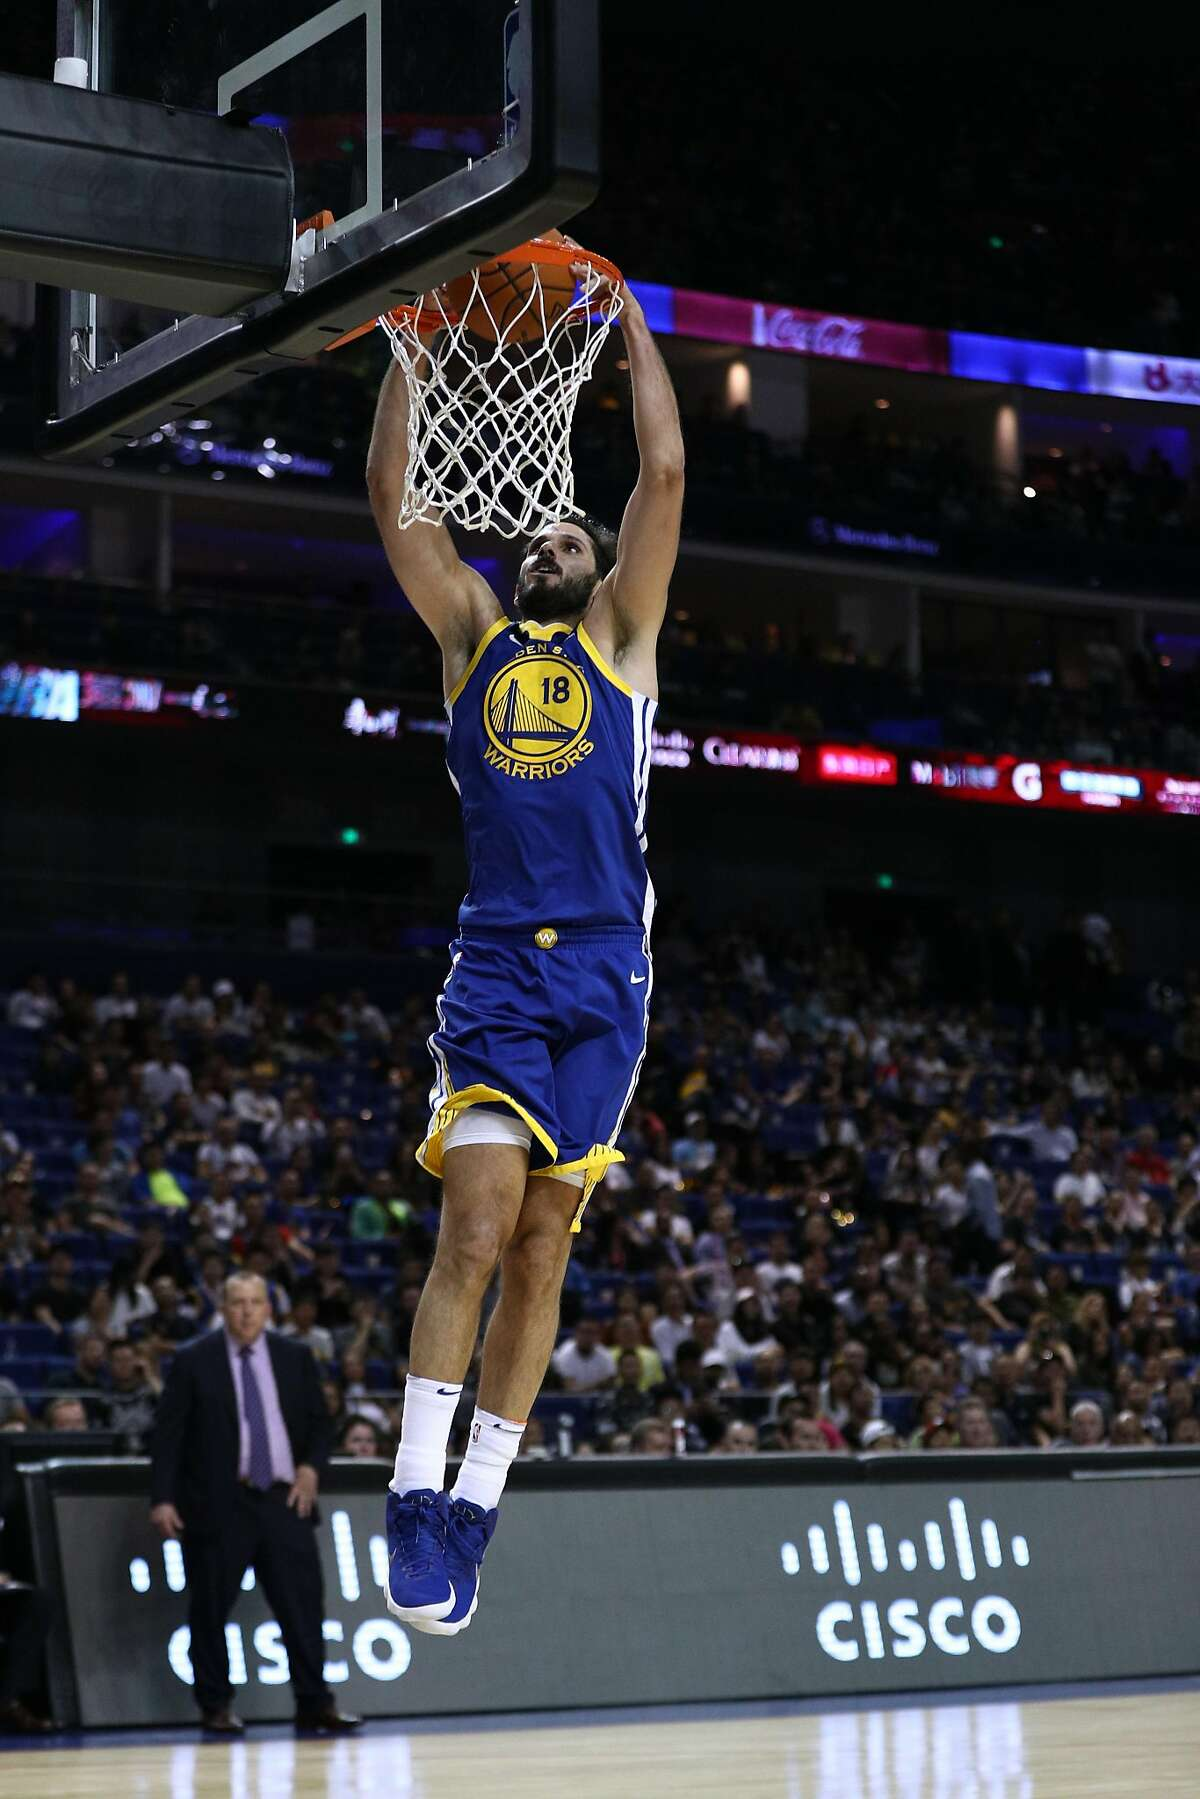 SHANGHAI, CHINA - OCTOBER 08: Omri Casspi #18 of the Golden State Warriors drunks during the game between the Minnesota Timberwolves and the Golden State Warriors as part of 2017 NBA Global Games China at Mercedes-Benz Arena on October 8, 2017 in Shanghai, China. (Photo by Zhong Zhi/Getty Images)